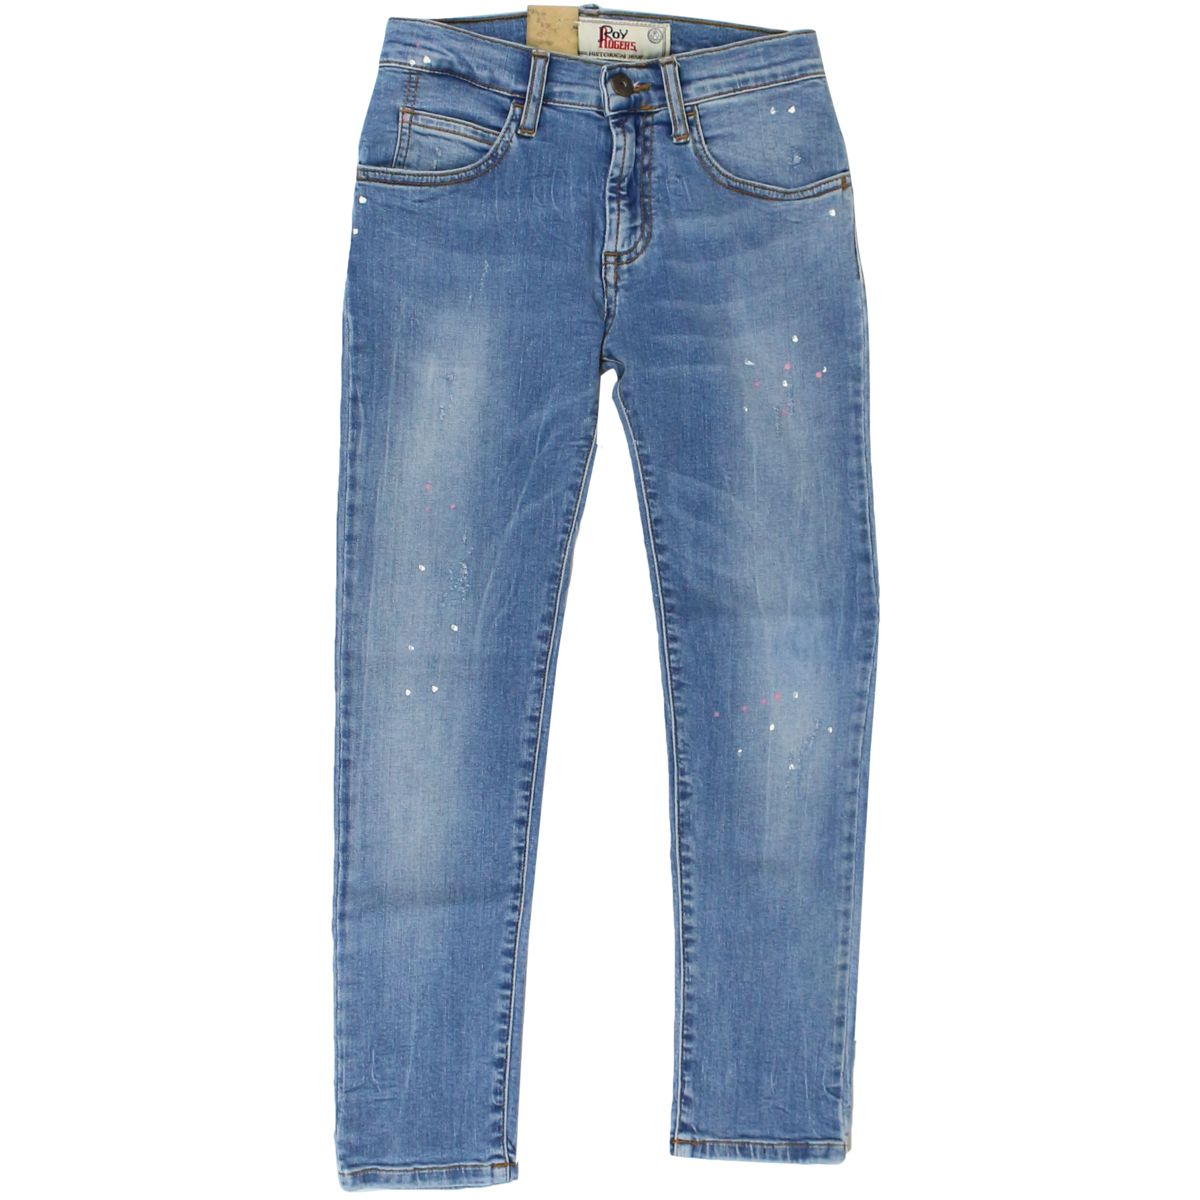 Araton Nouel Jeans Light denim ROY ROGER'S